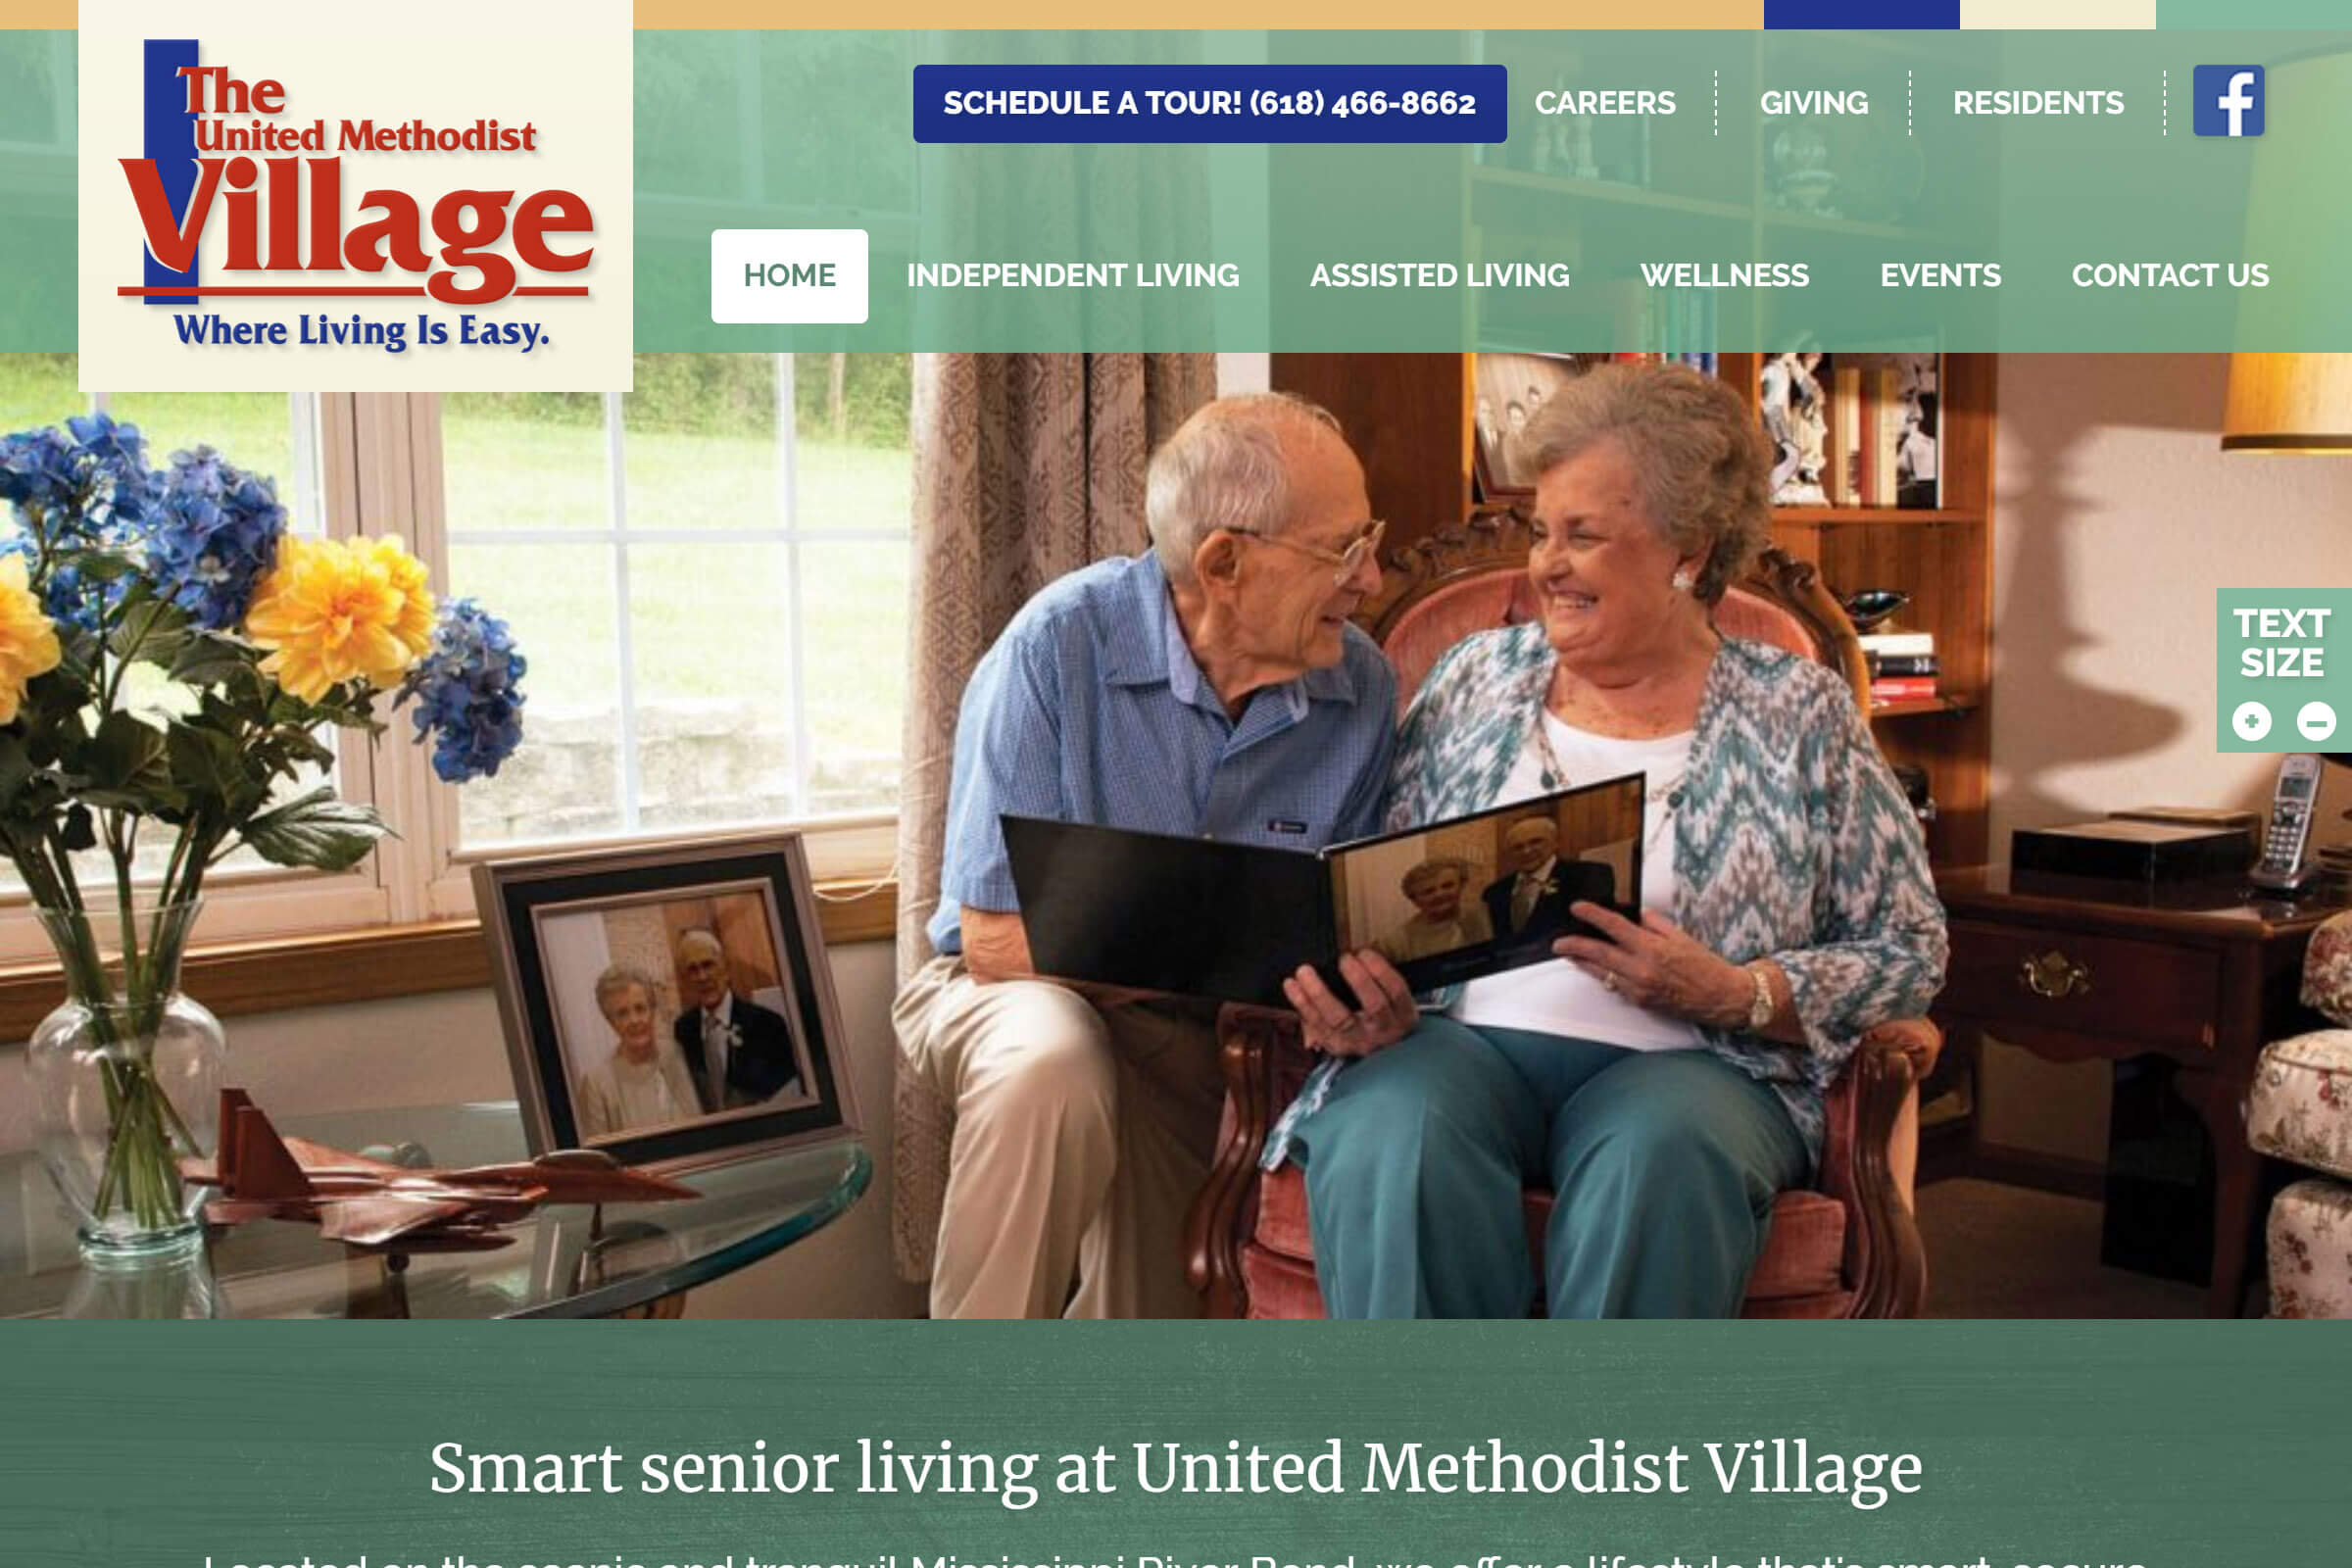 United Methodist Village